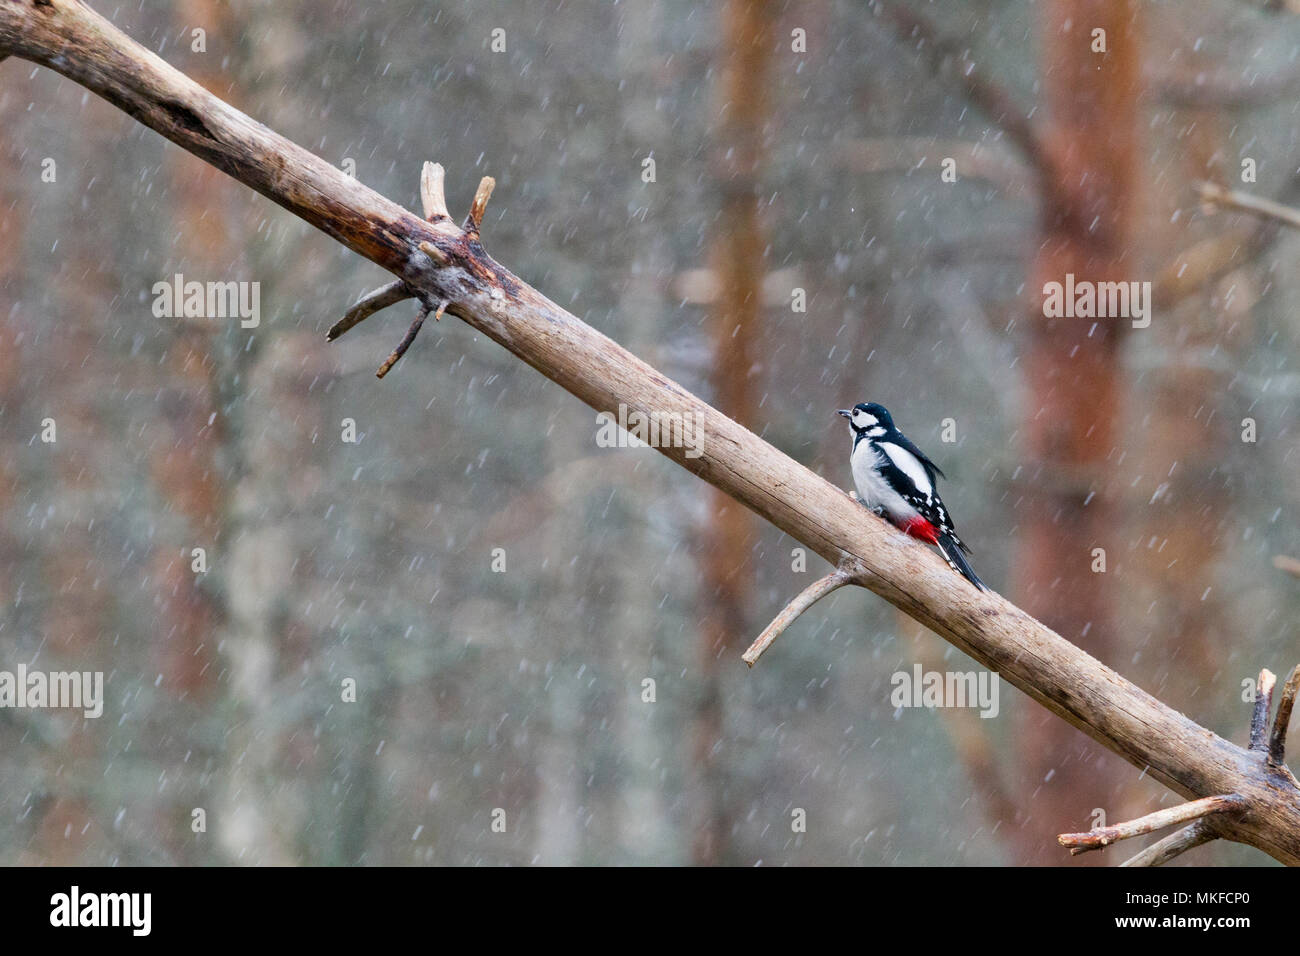 Great Spotted Woodpecker (Dendrocopos major) male on a trunk, Kajaani, Kuhmo area, Finland - Stock Image